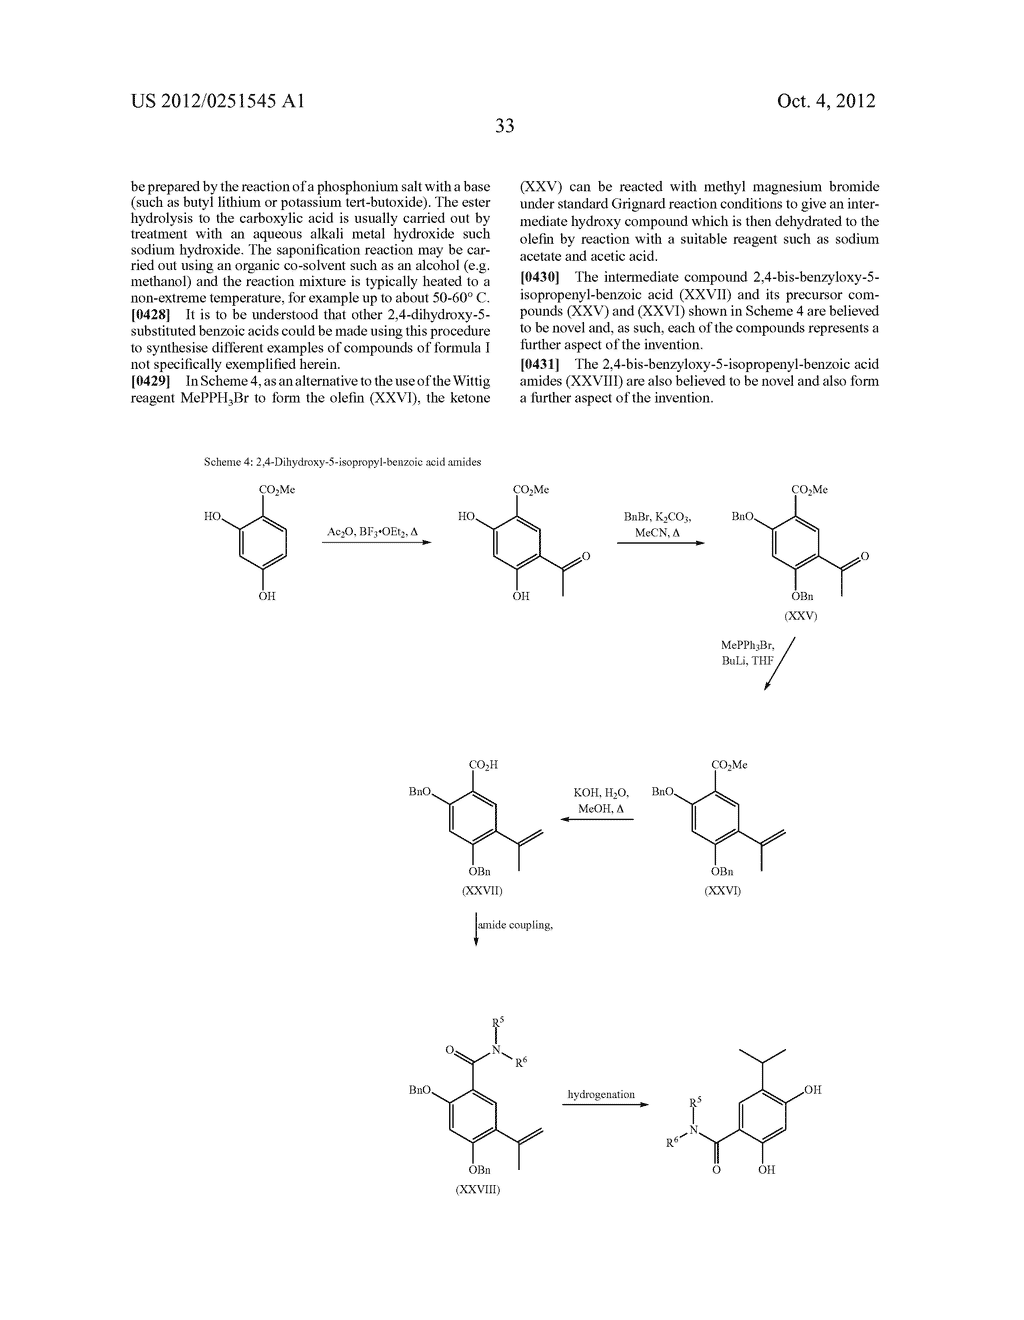 Therapeutic Combinations Of Hydroxybenzamide Derivatives As Inhibitors Of     HSP90 - diagram, schematic, and image 34